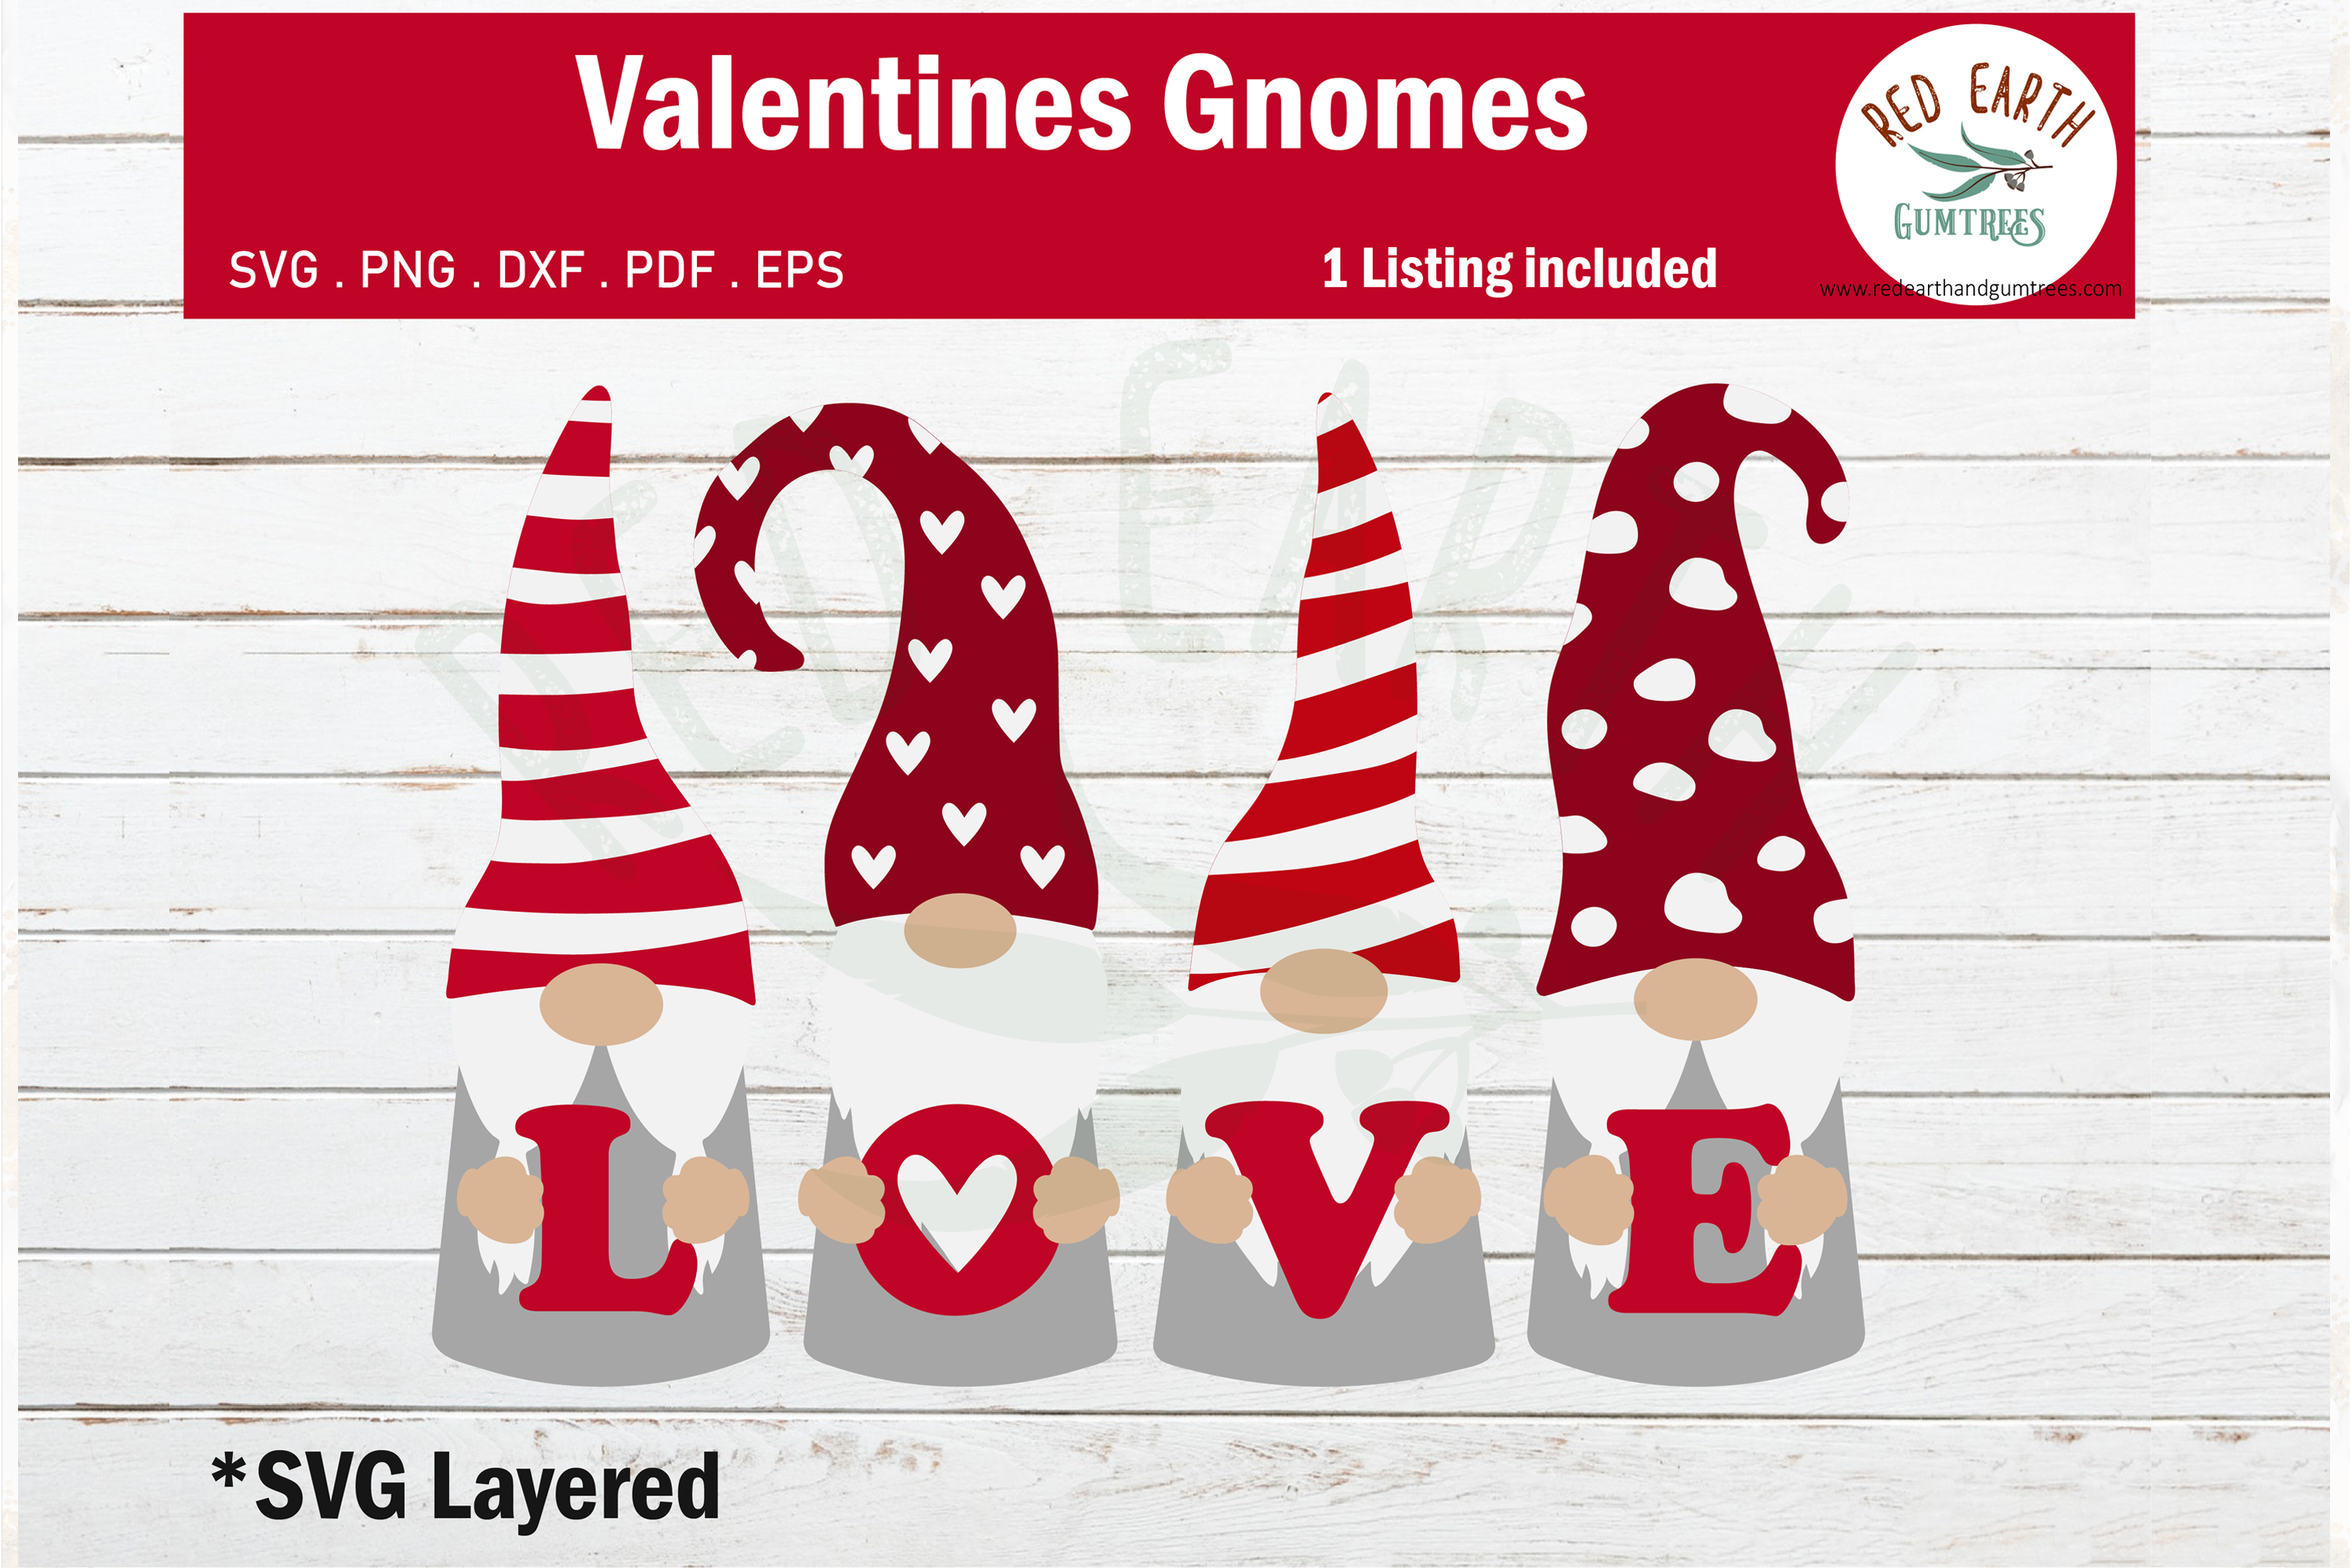 Download Free Gnomes Heart Valentines Love Gnomes Graphic By Redearth And Gumtrees Creative Fabrica for Cricut Explore, Silhouette and other cutting machines.